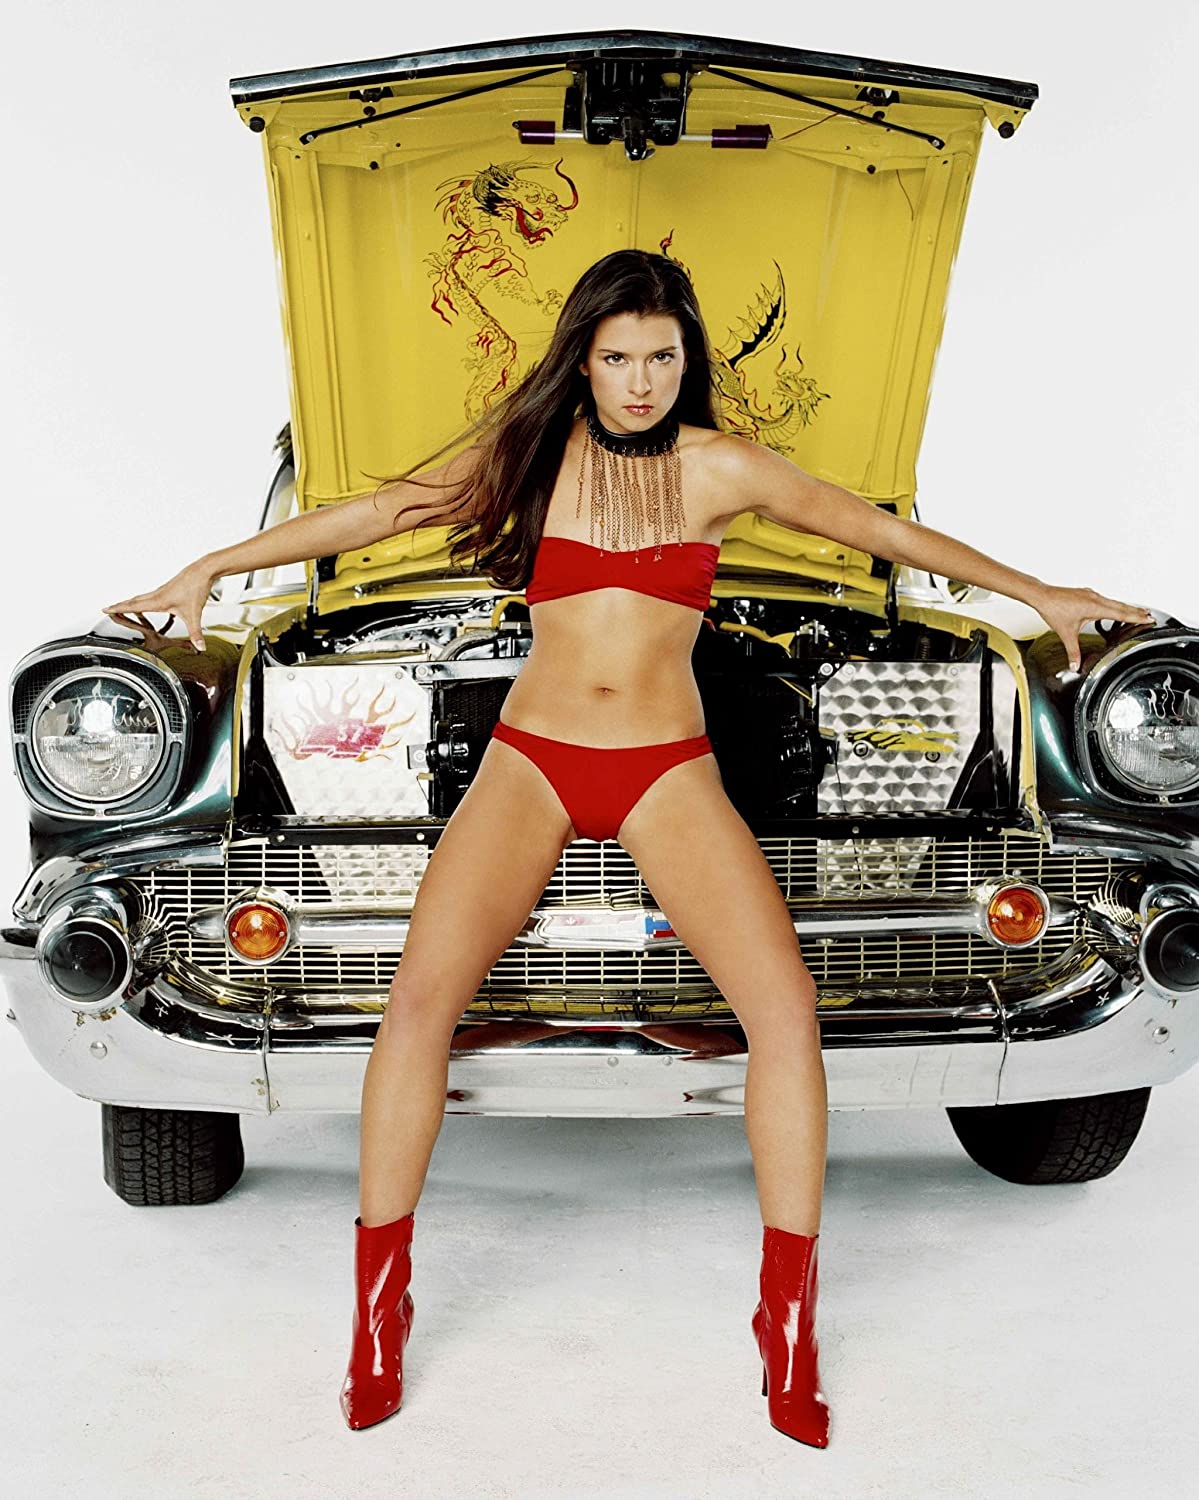 Celebrity Danica Patrick nudes (62 foto and video), Topless, Cleavage, Instagram, legs 2015